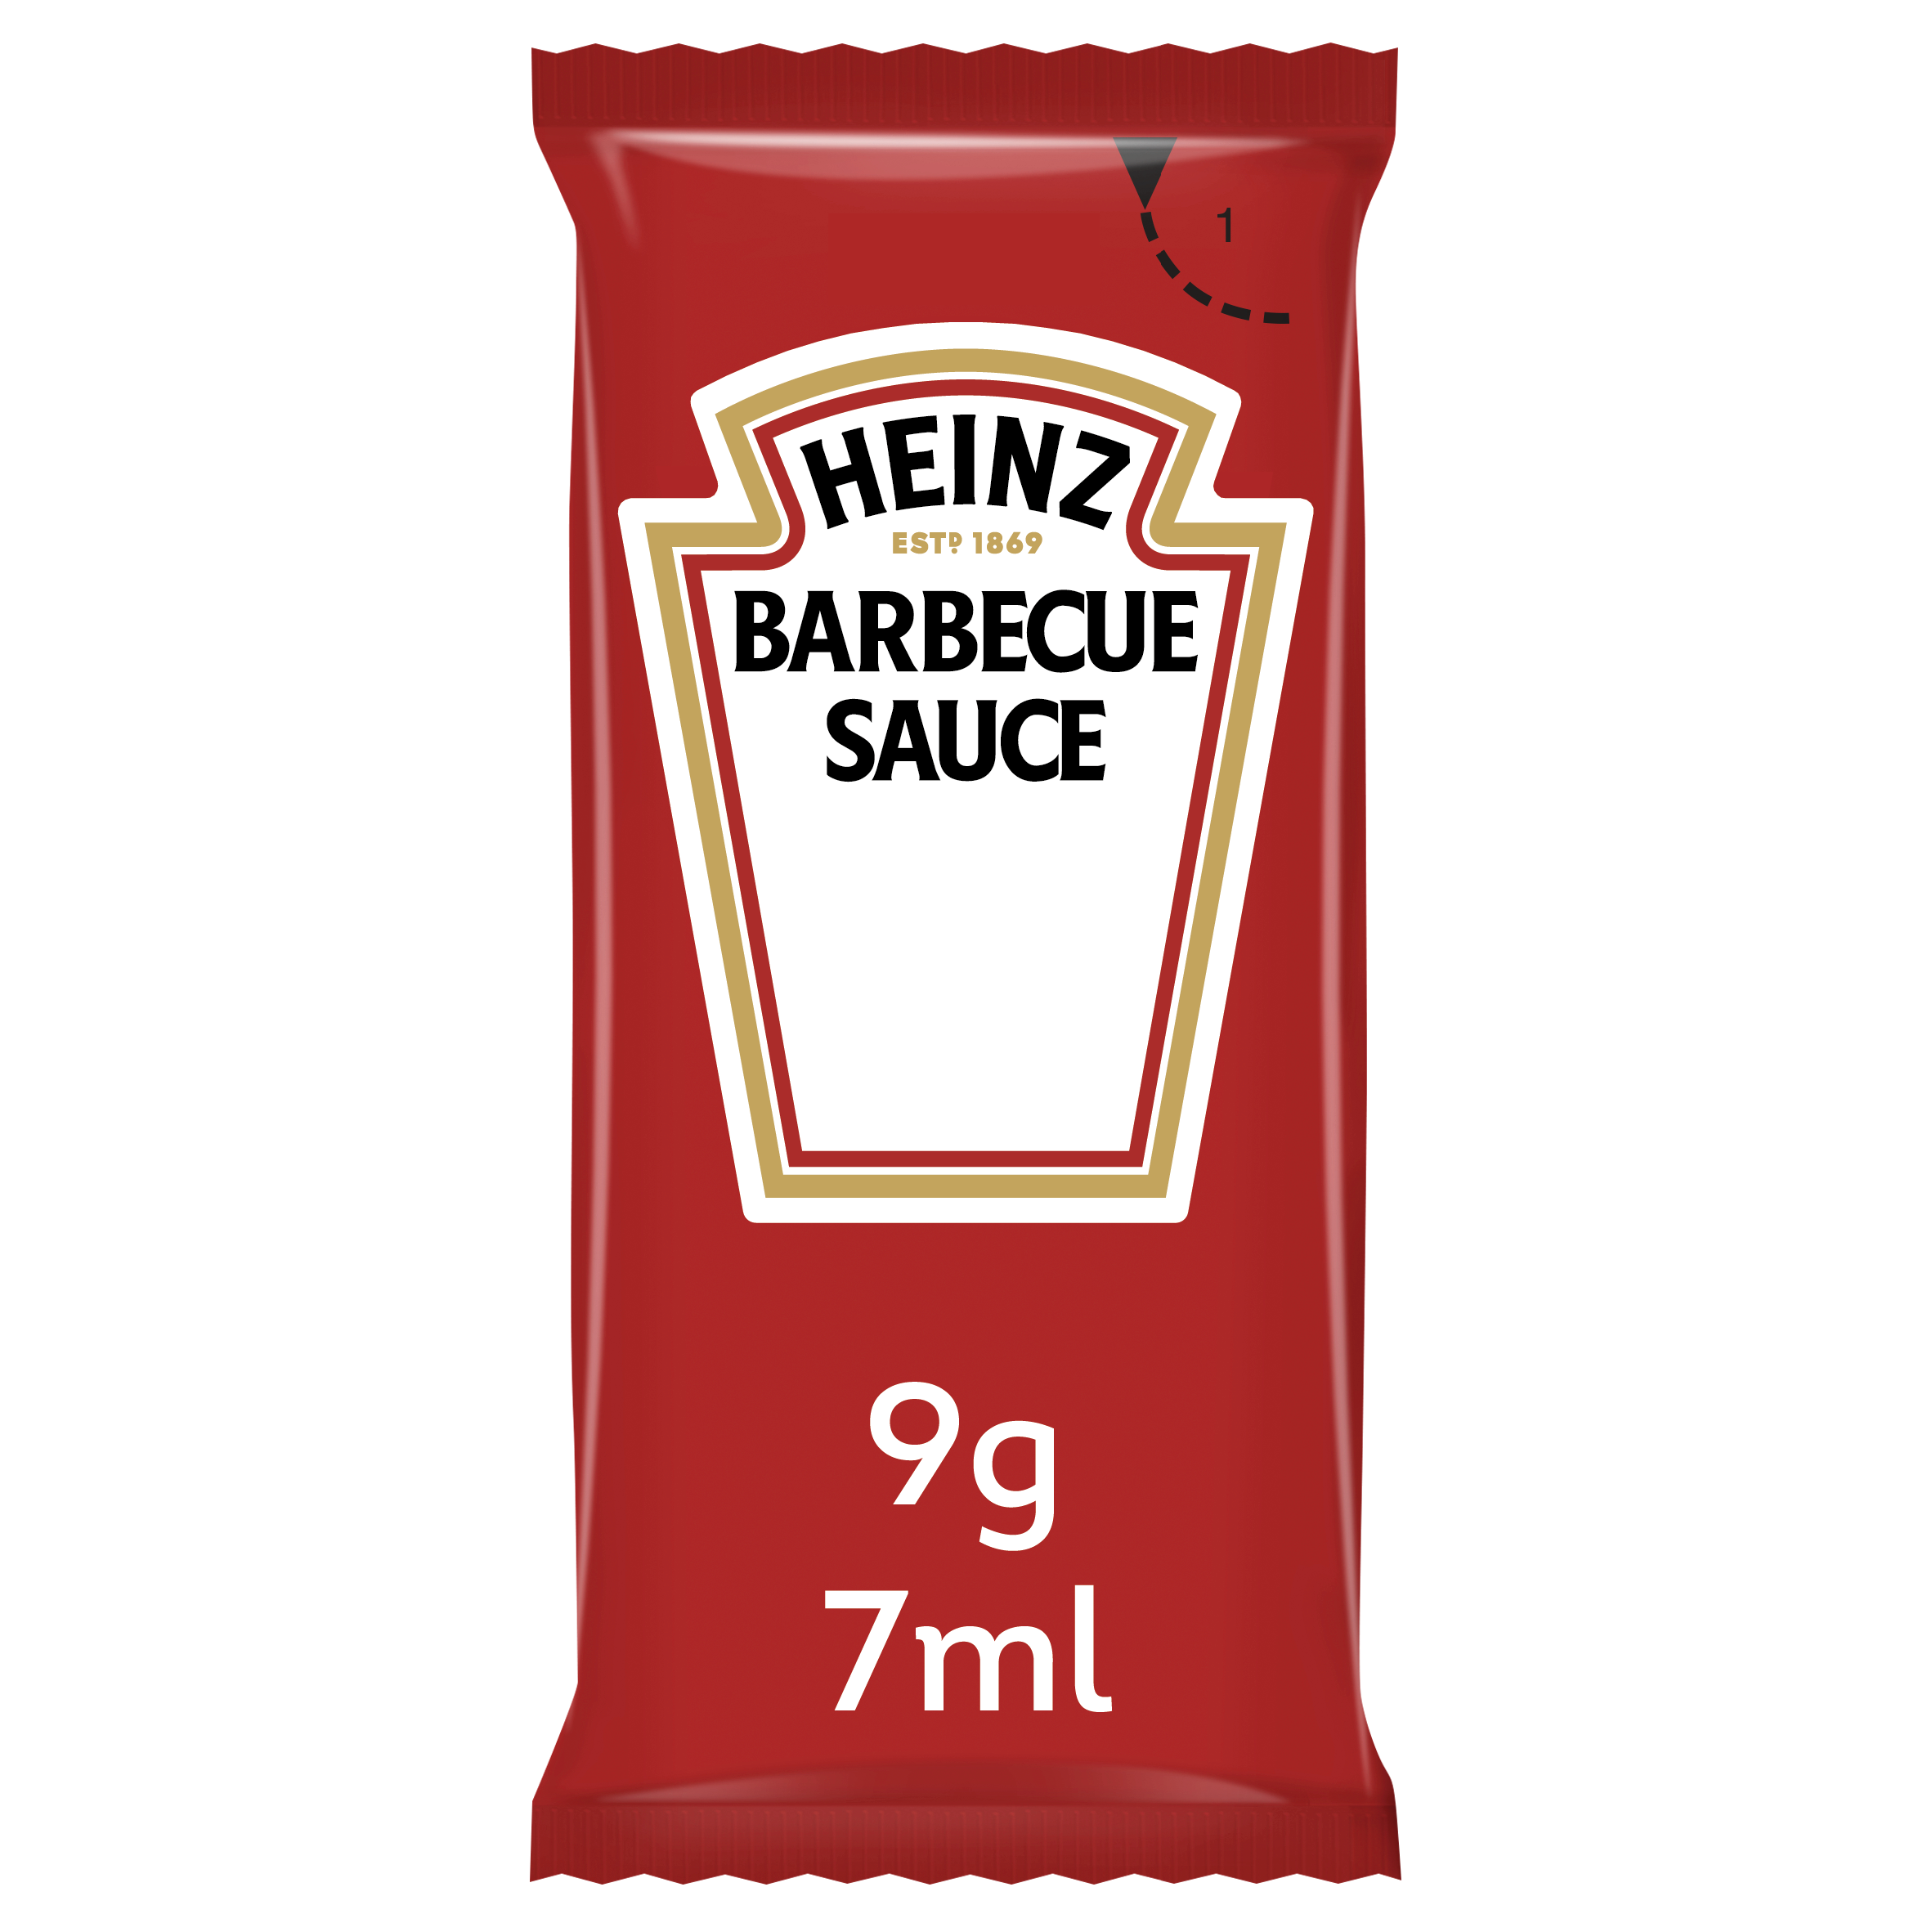 Heinz Barbecue Sauce 7ml Bustina image